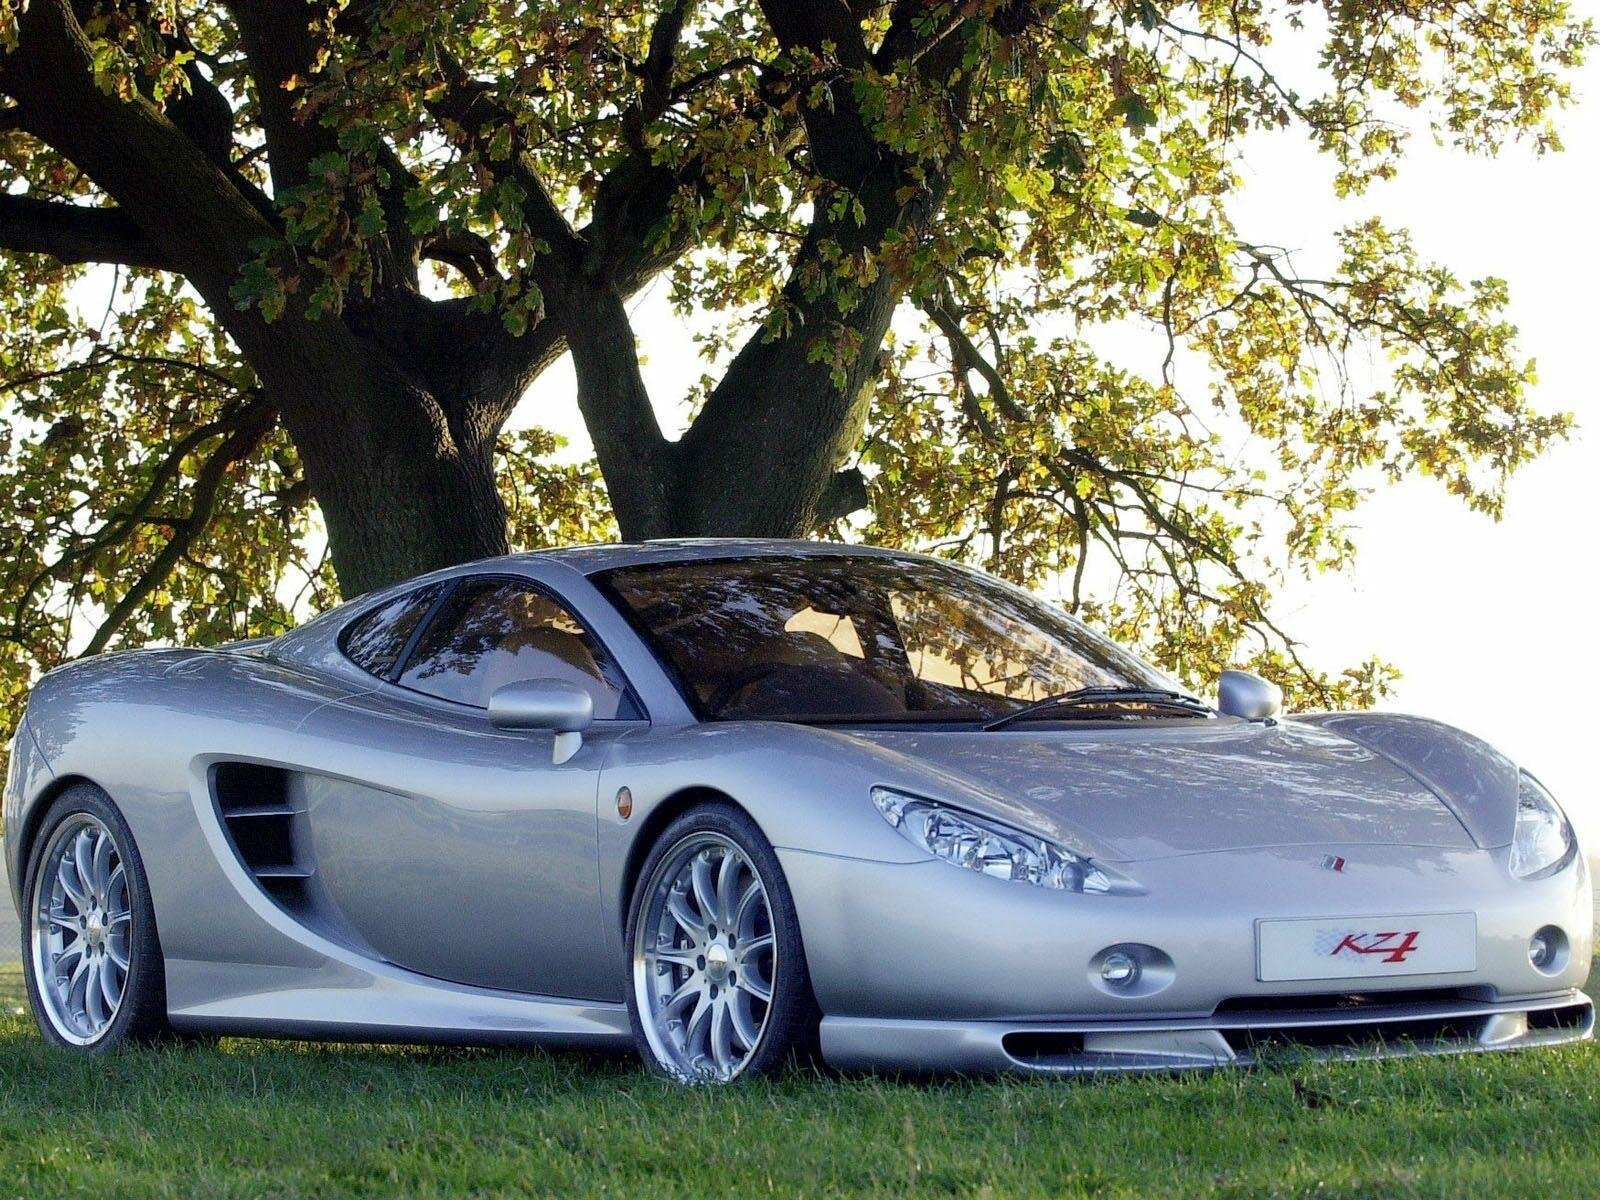 Latest Ascari Kz1 Wallpapers Hd Download Free Download